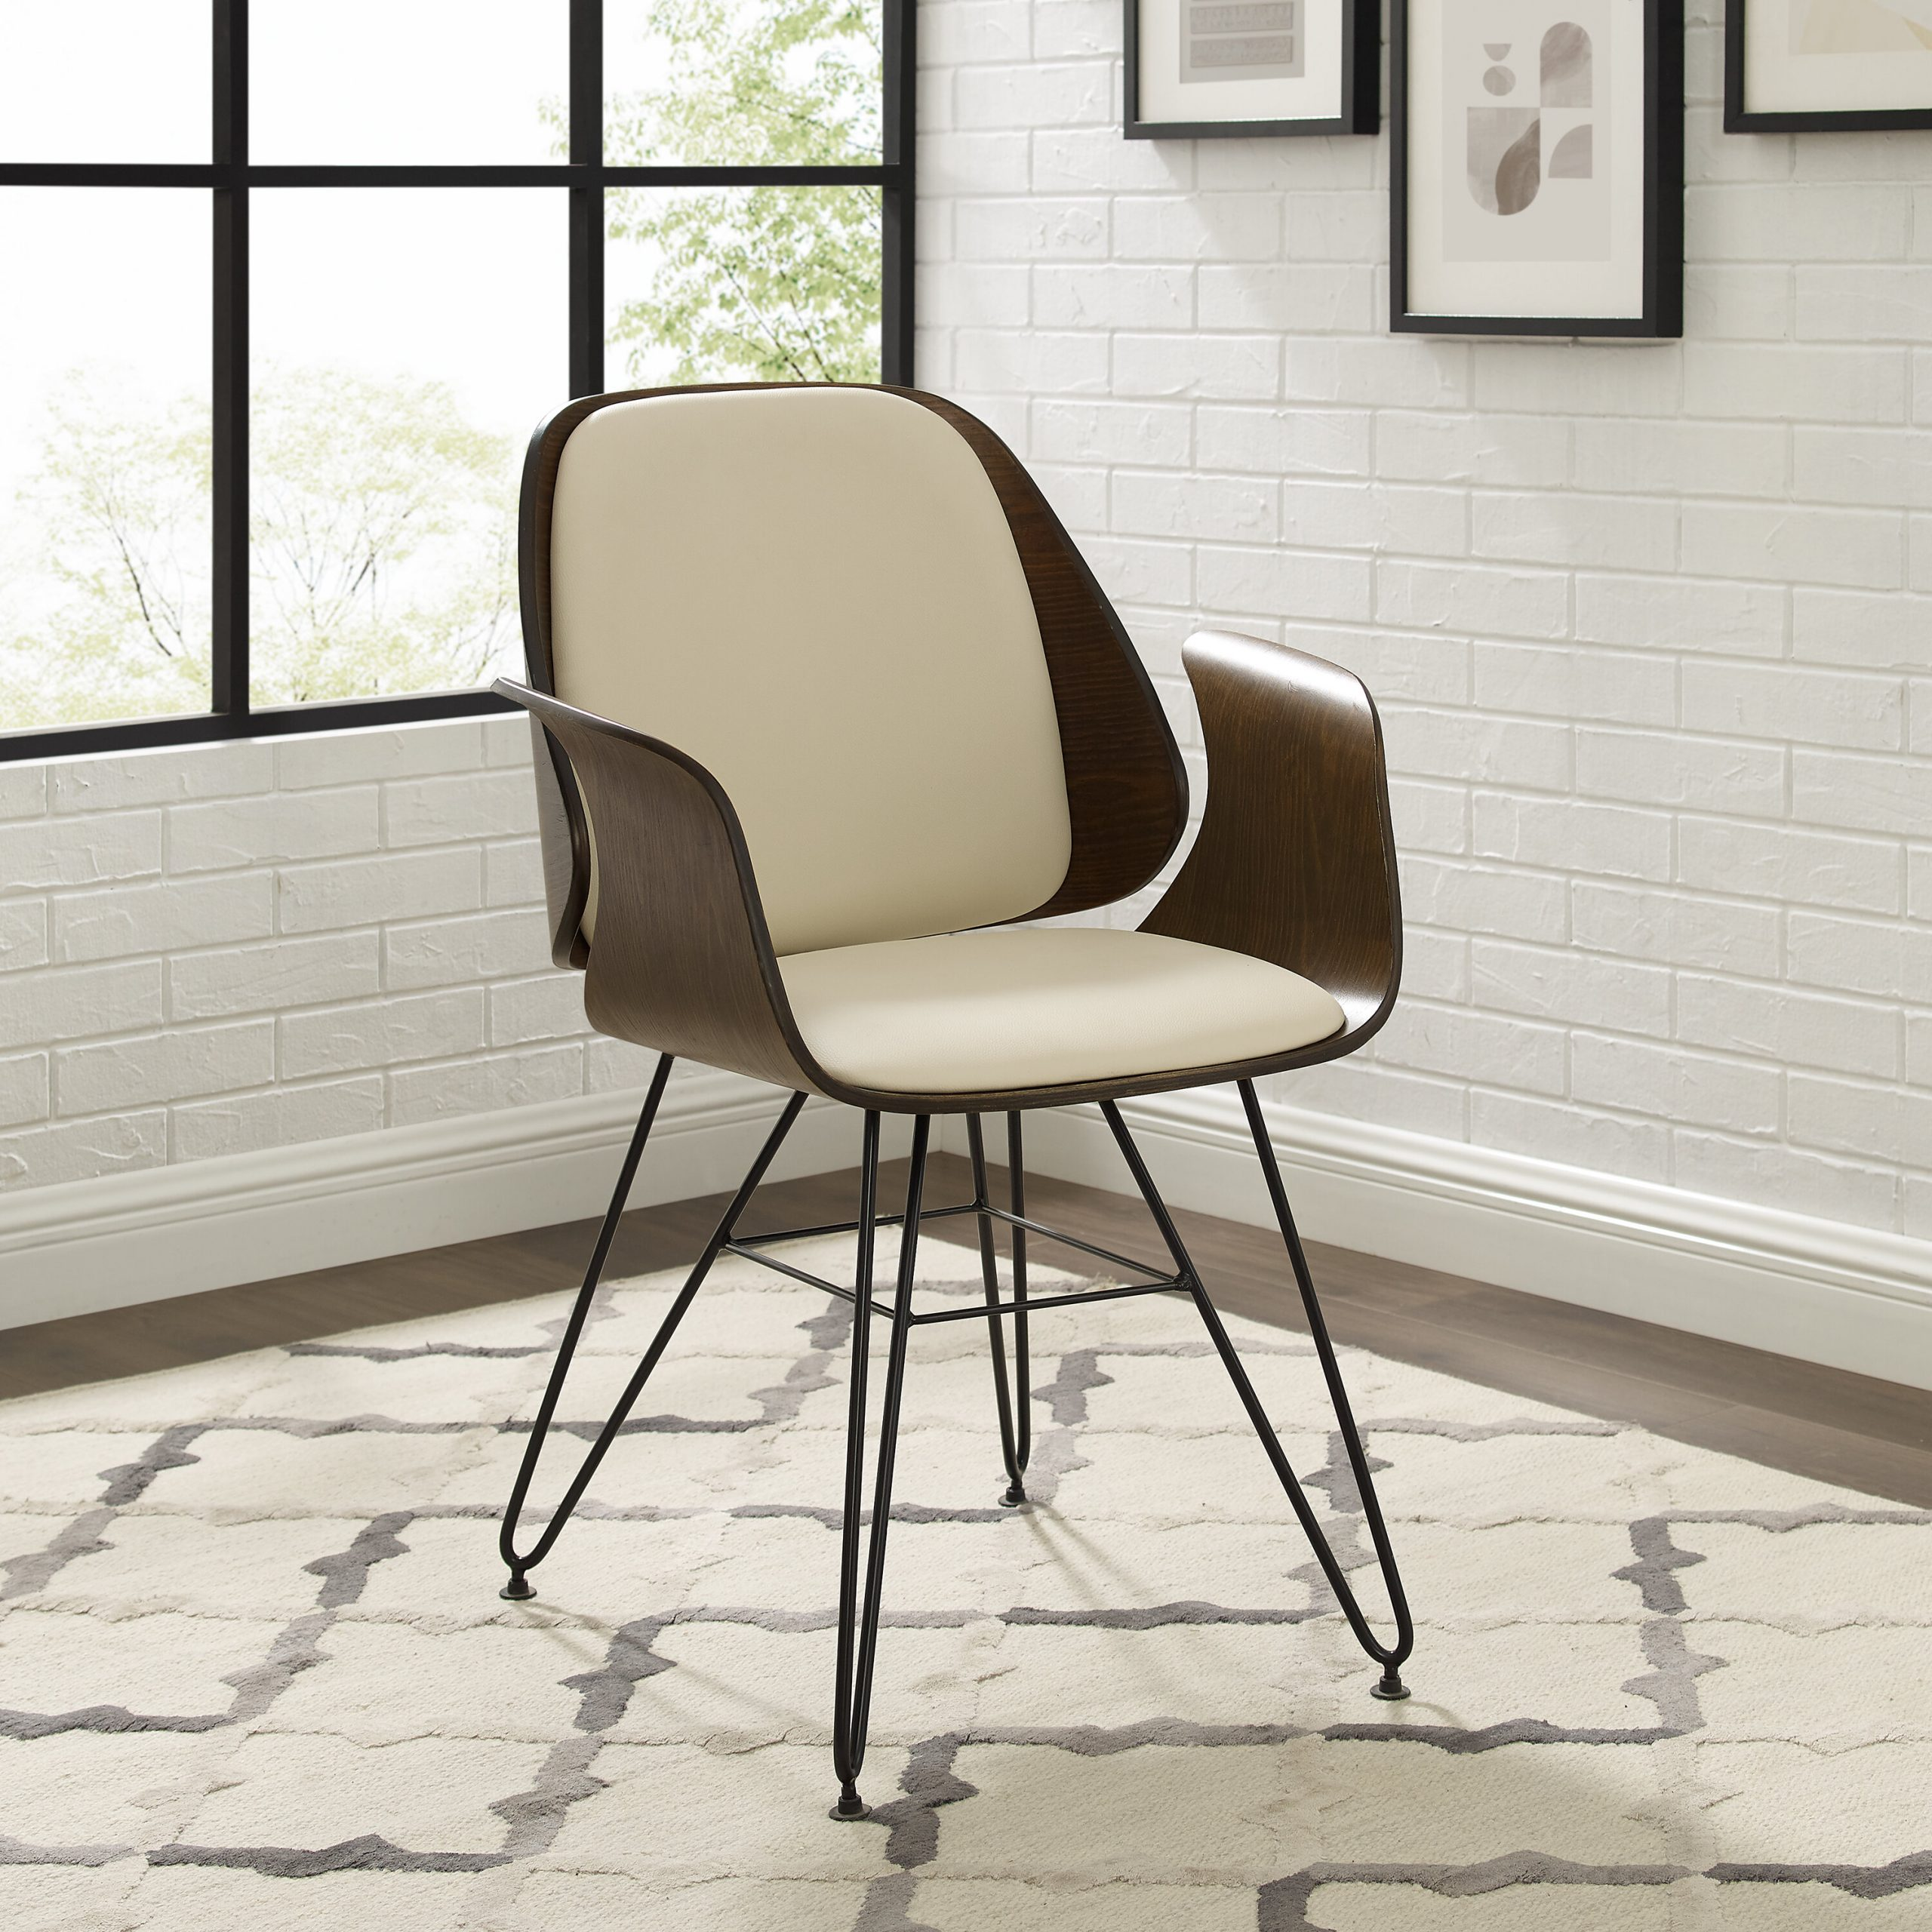 Faux Leather Accent Chairs Under $150 You'Ll Love In 2021 With Ansar Faux Leather Barrel Chairs (View 14 of 15)